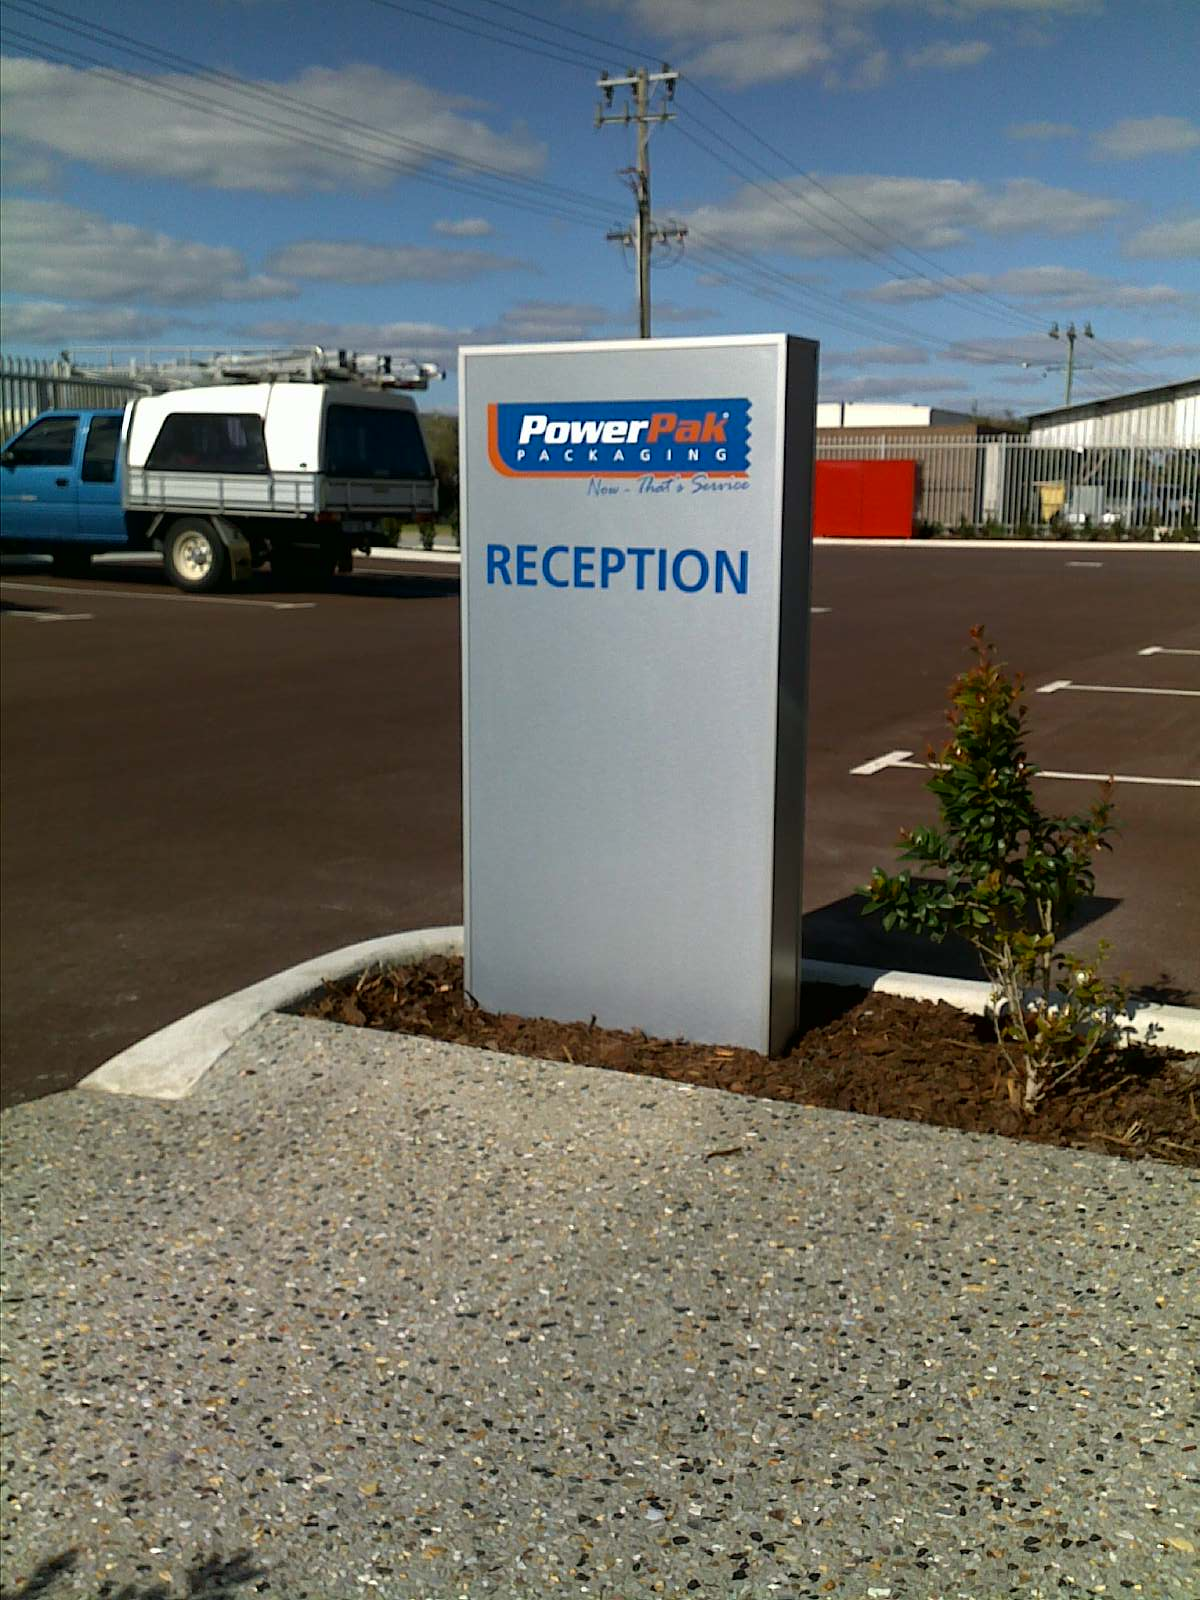 Powerpak Pylon